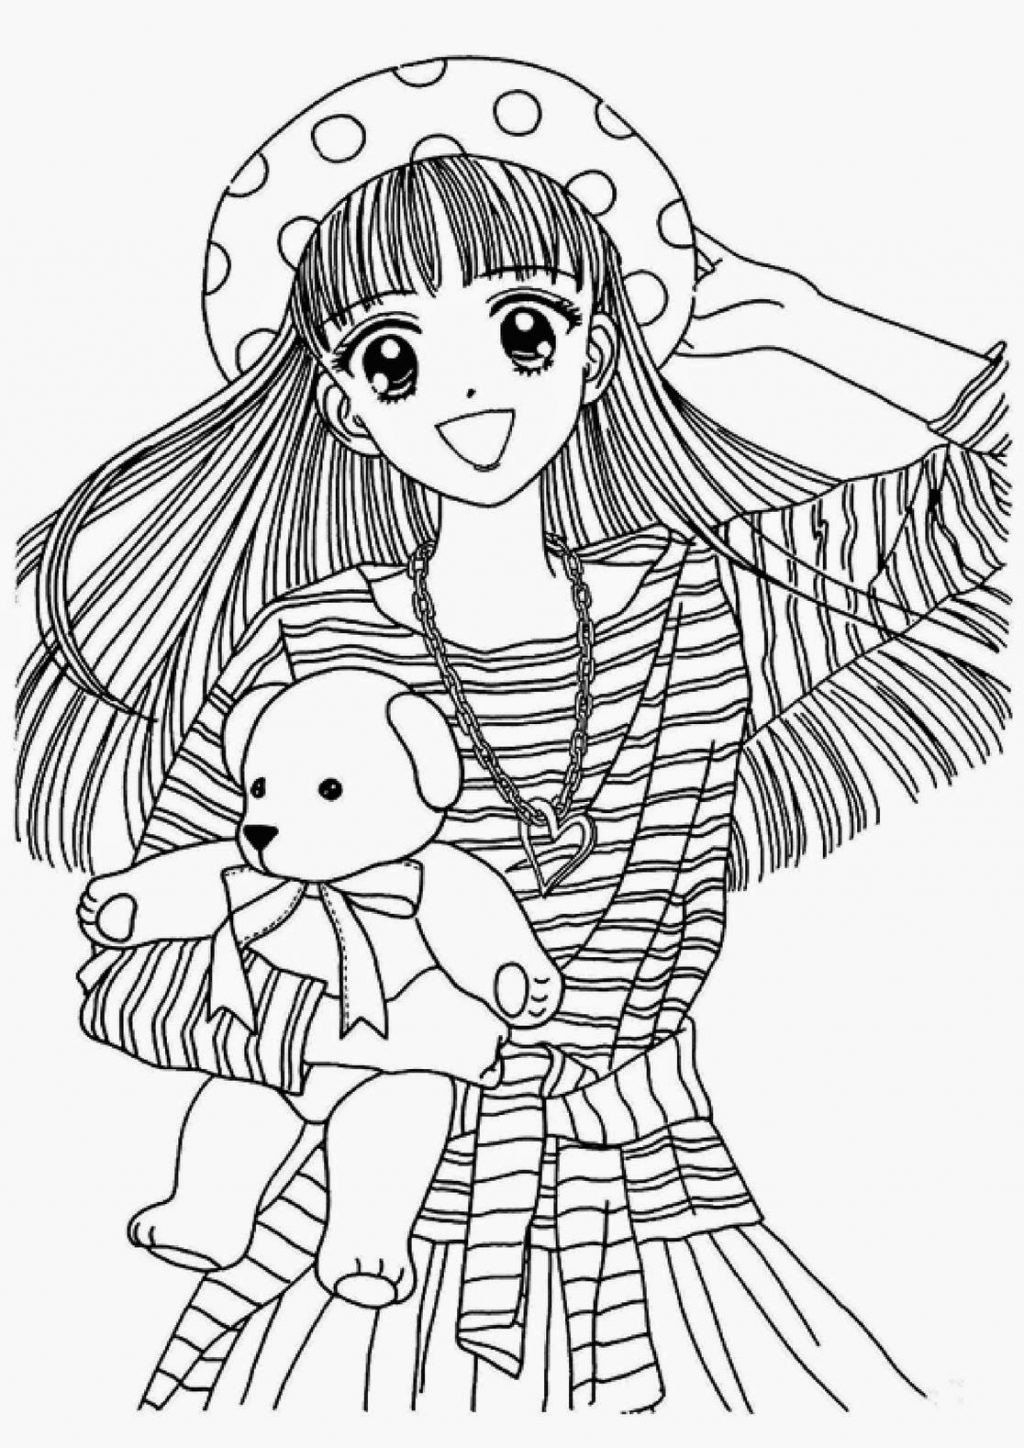 Good Samaritan Coloring Page Lovely Coloring Pages Japanese Shoujo Coloring Book Irish Pages Princess Coloring Pages People Coloring Pages Chibi Coloring Pages